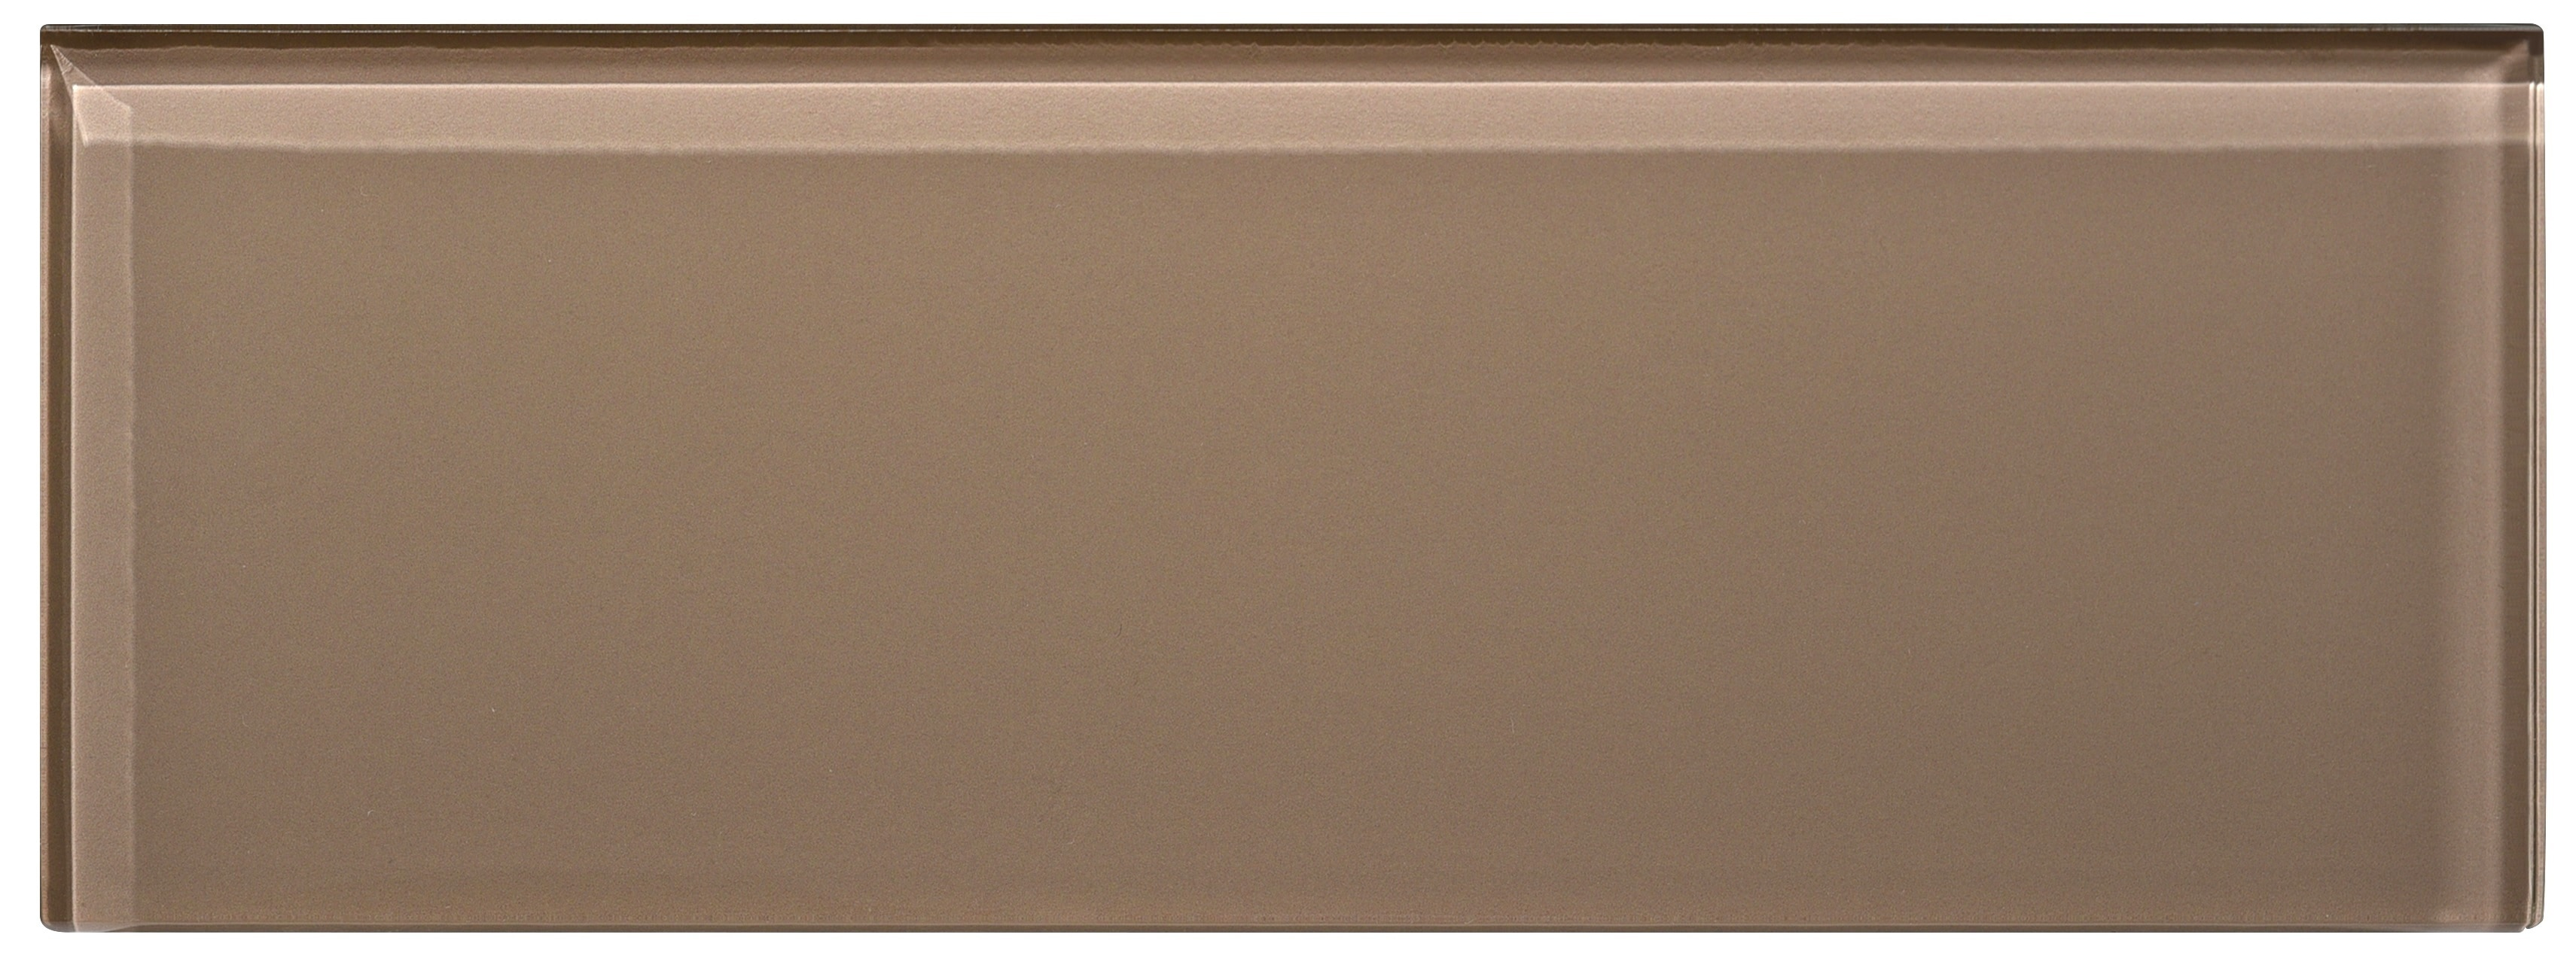 """Glass Subway Tile / 4 x 12 x 0.31 inches / Glossy Individual 4"""" X 12"""" Glass Subway Tile In Beige 0"""